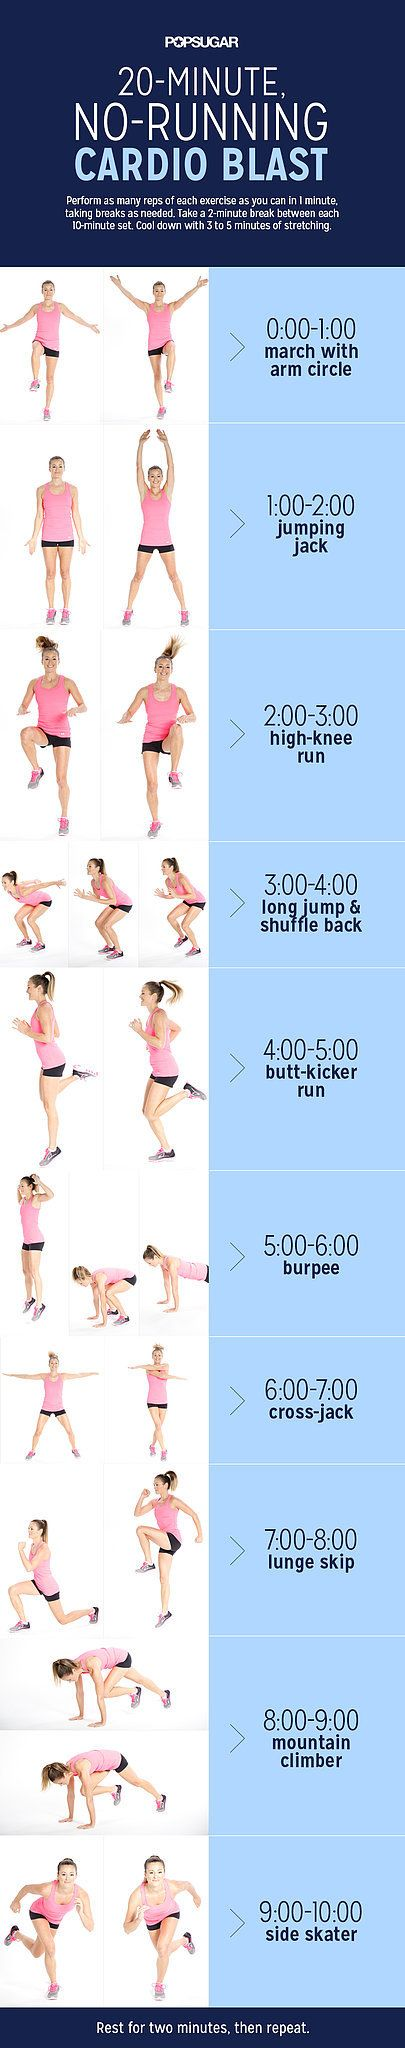 20-Minute Calorie-Torching Cardio Workout -- did this last night, great cardio